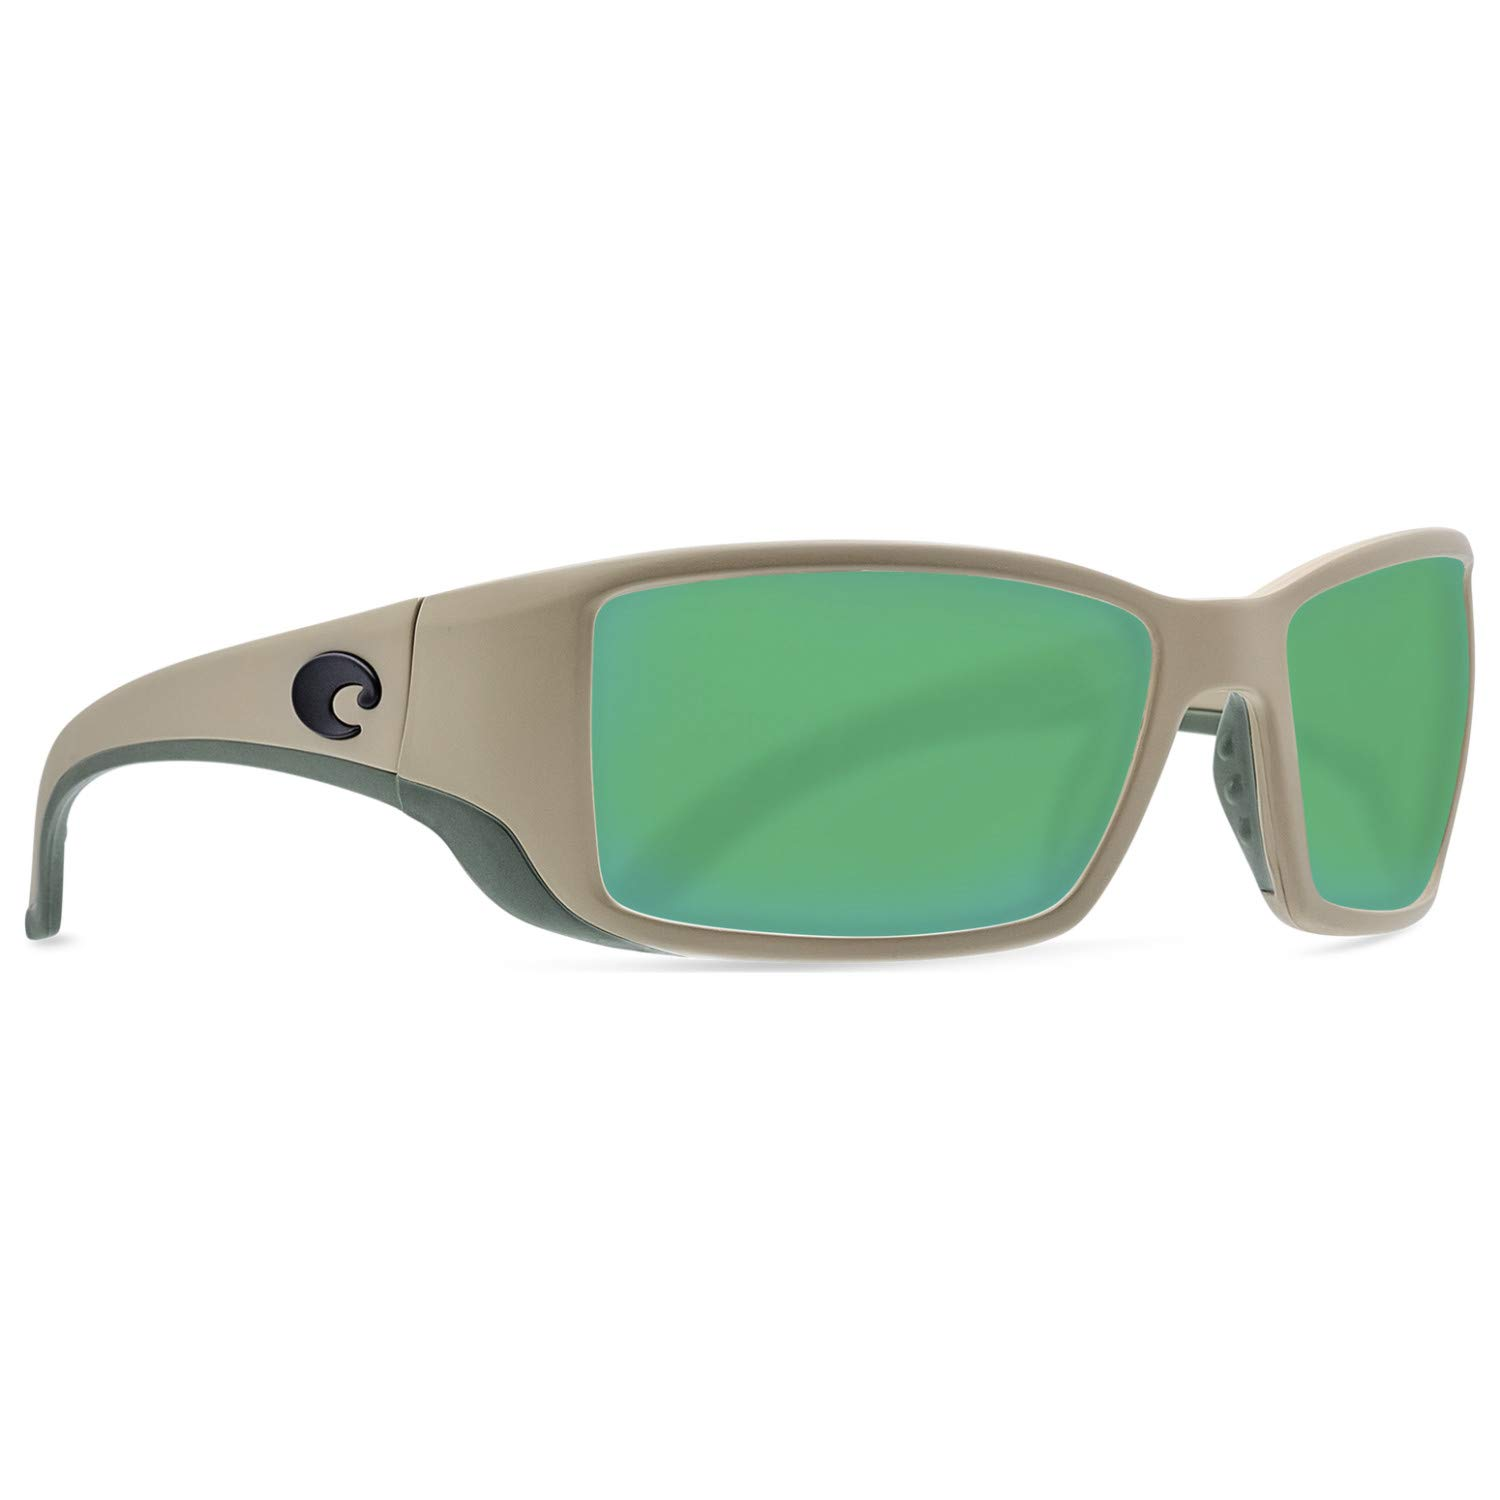 Costa Blackfin Plastic Frame Green Mirror Glass Lens Men's Sunglasses BL248OGMGLP by Costa Rican